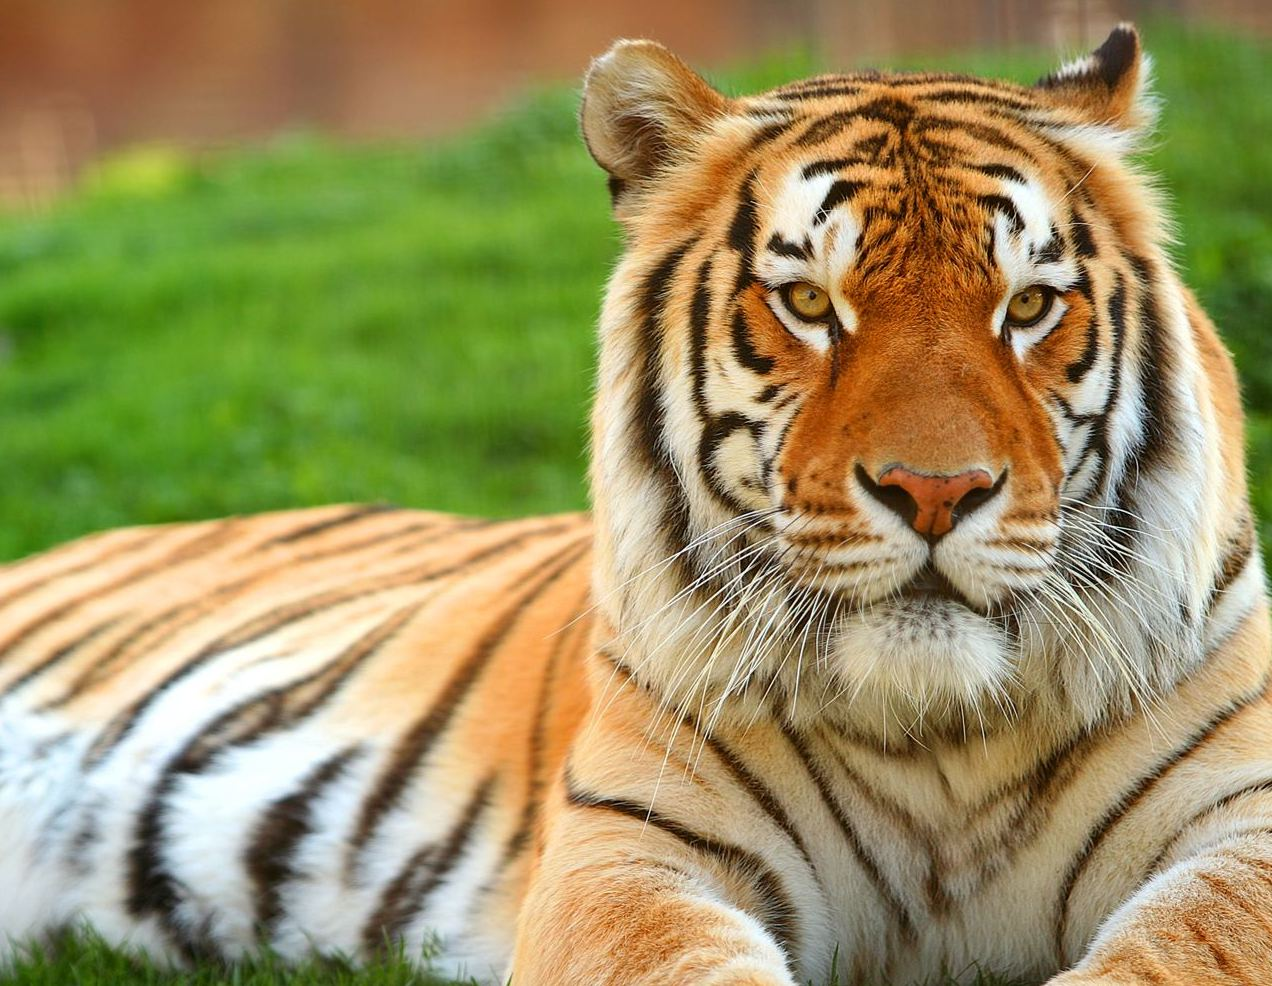 Get the best size of Tiger Wallpaper and Desktop tiger wallpapers here 1272x986